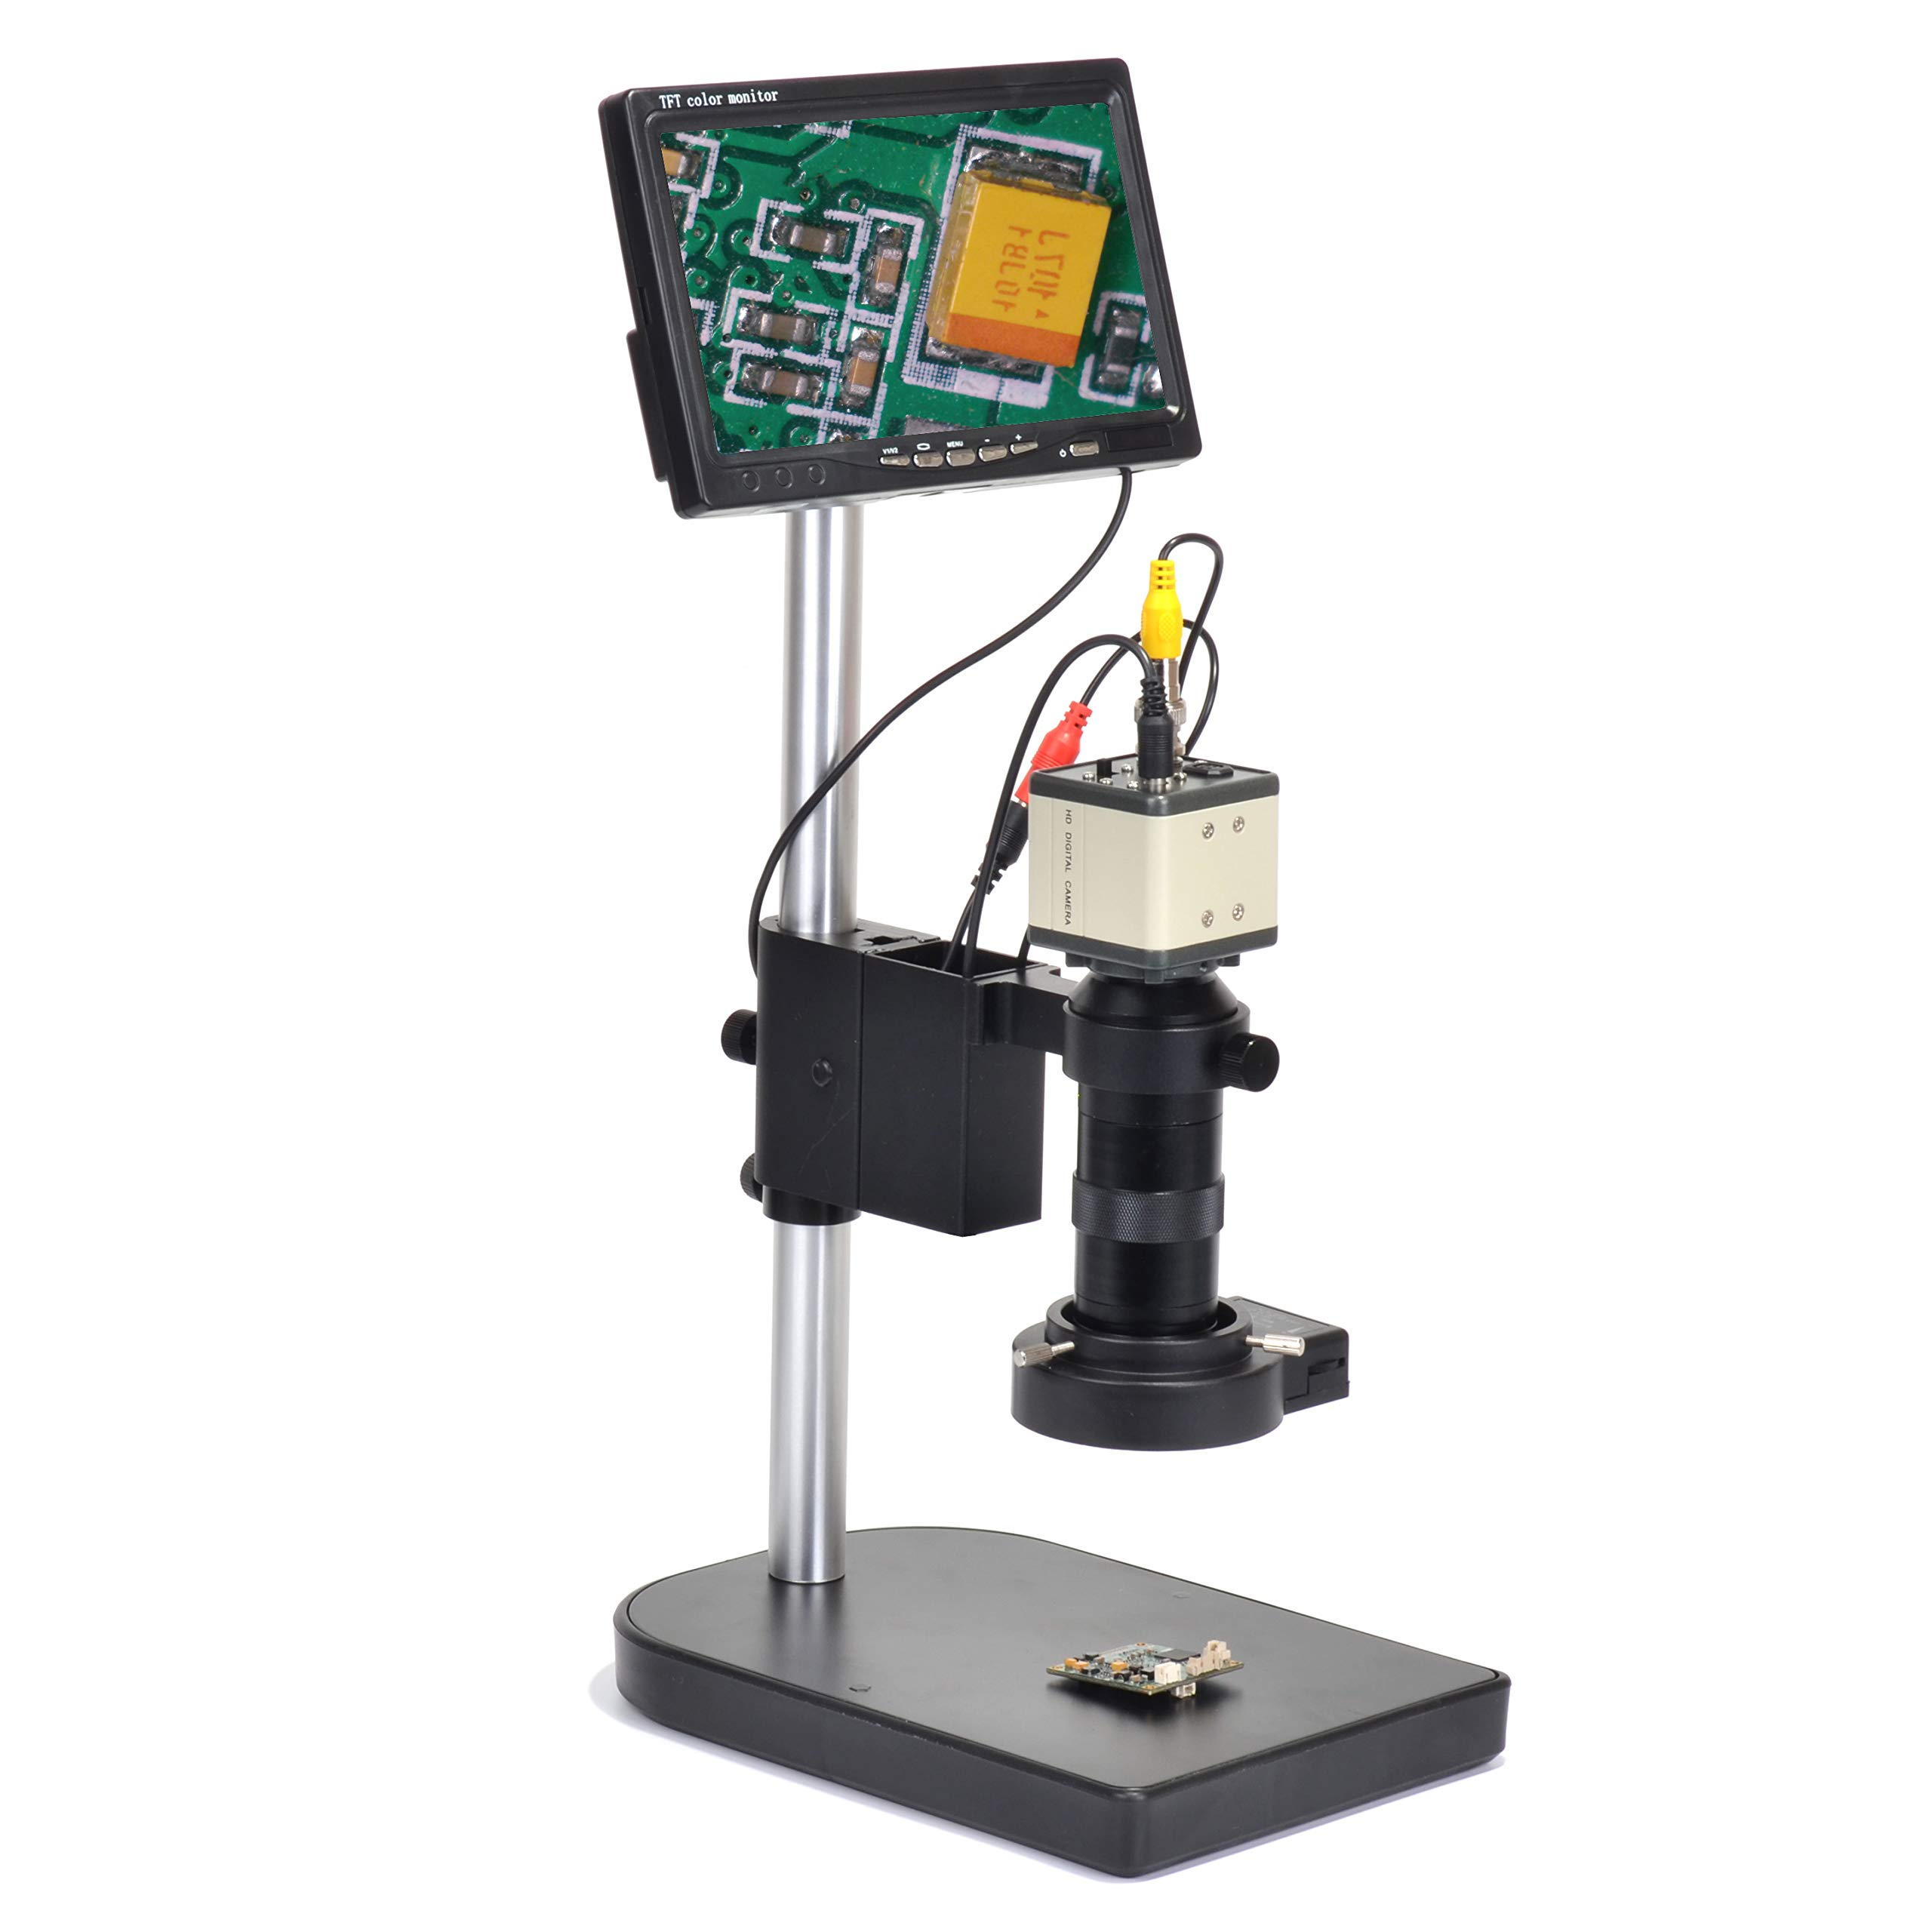 800TVL CCD 100X Microscope Industrial Camera Kit C-Mount Lens BNC Output 40 LED Ring Light 7'' LCD Monitor by HAYEAR